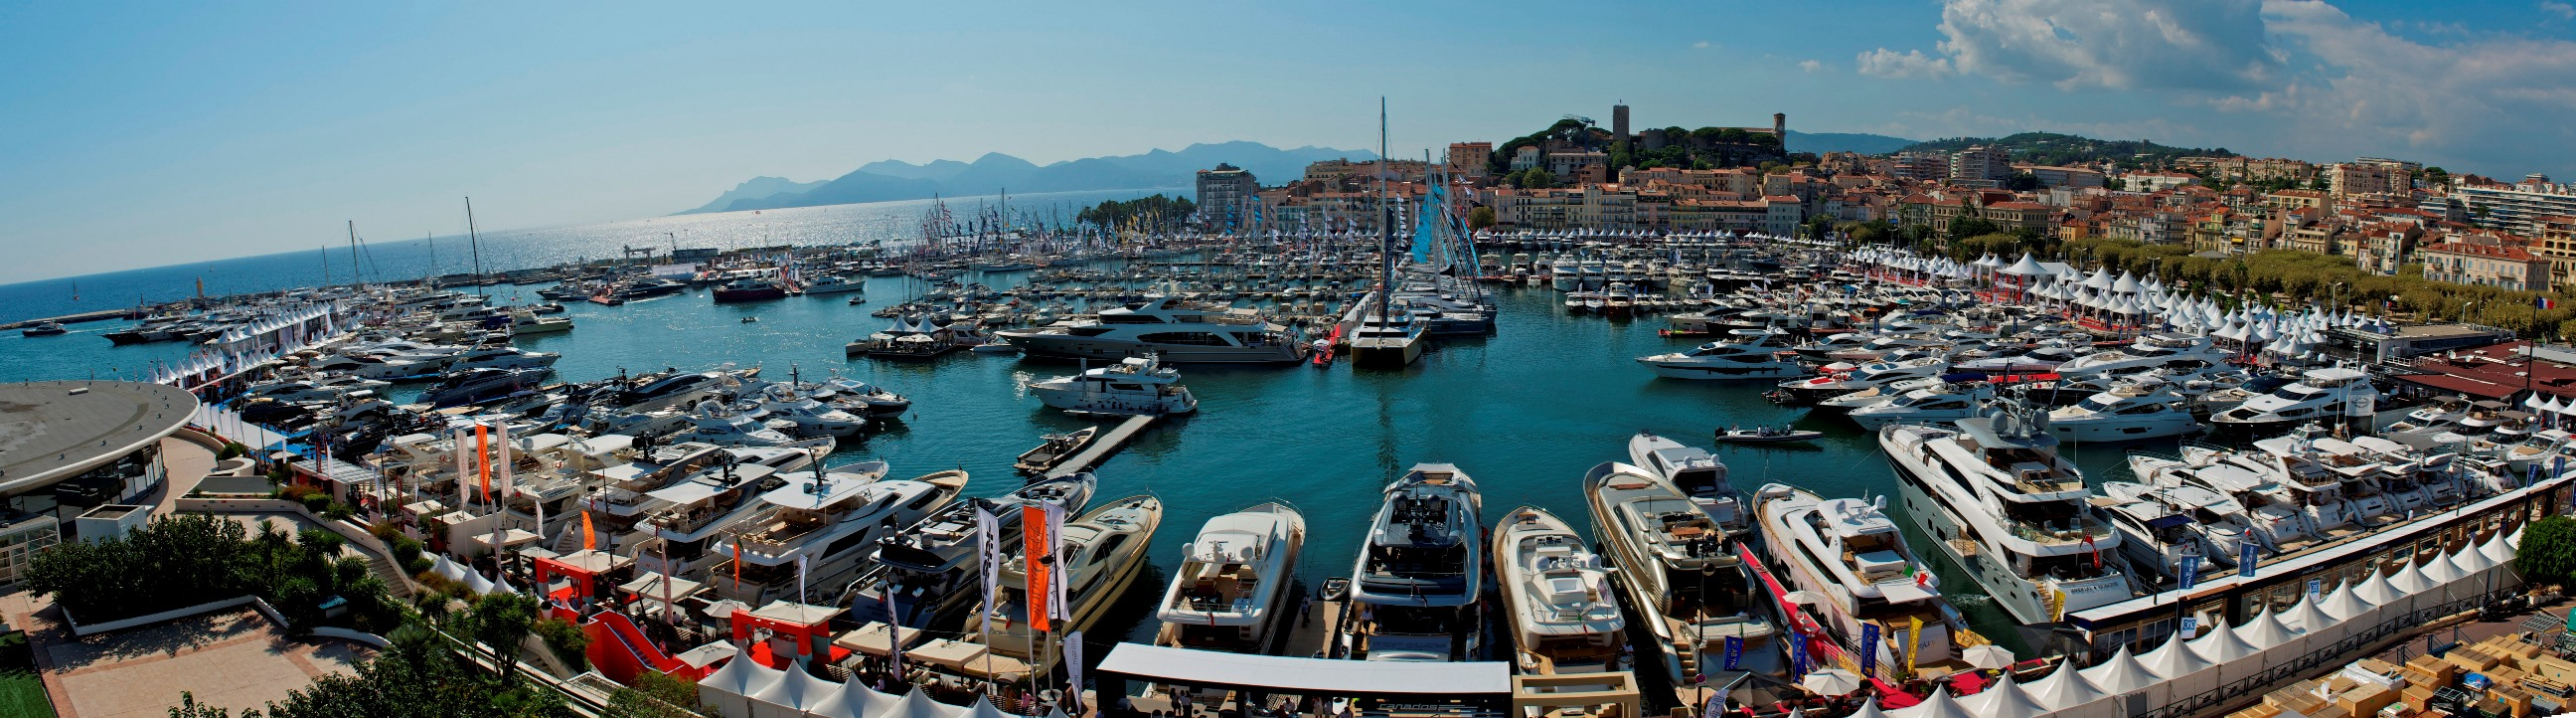 Cannes Boat 2015